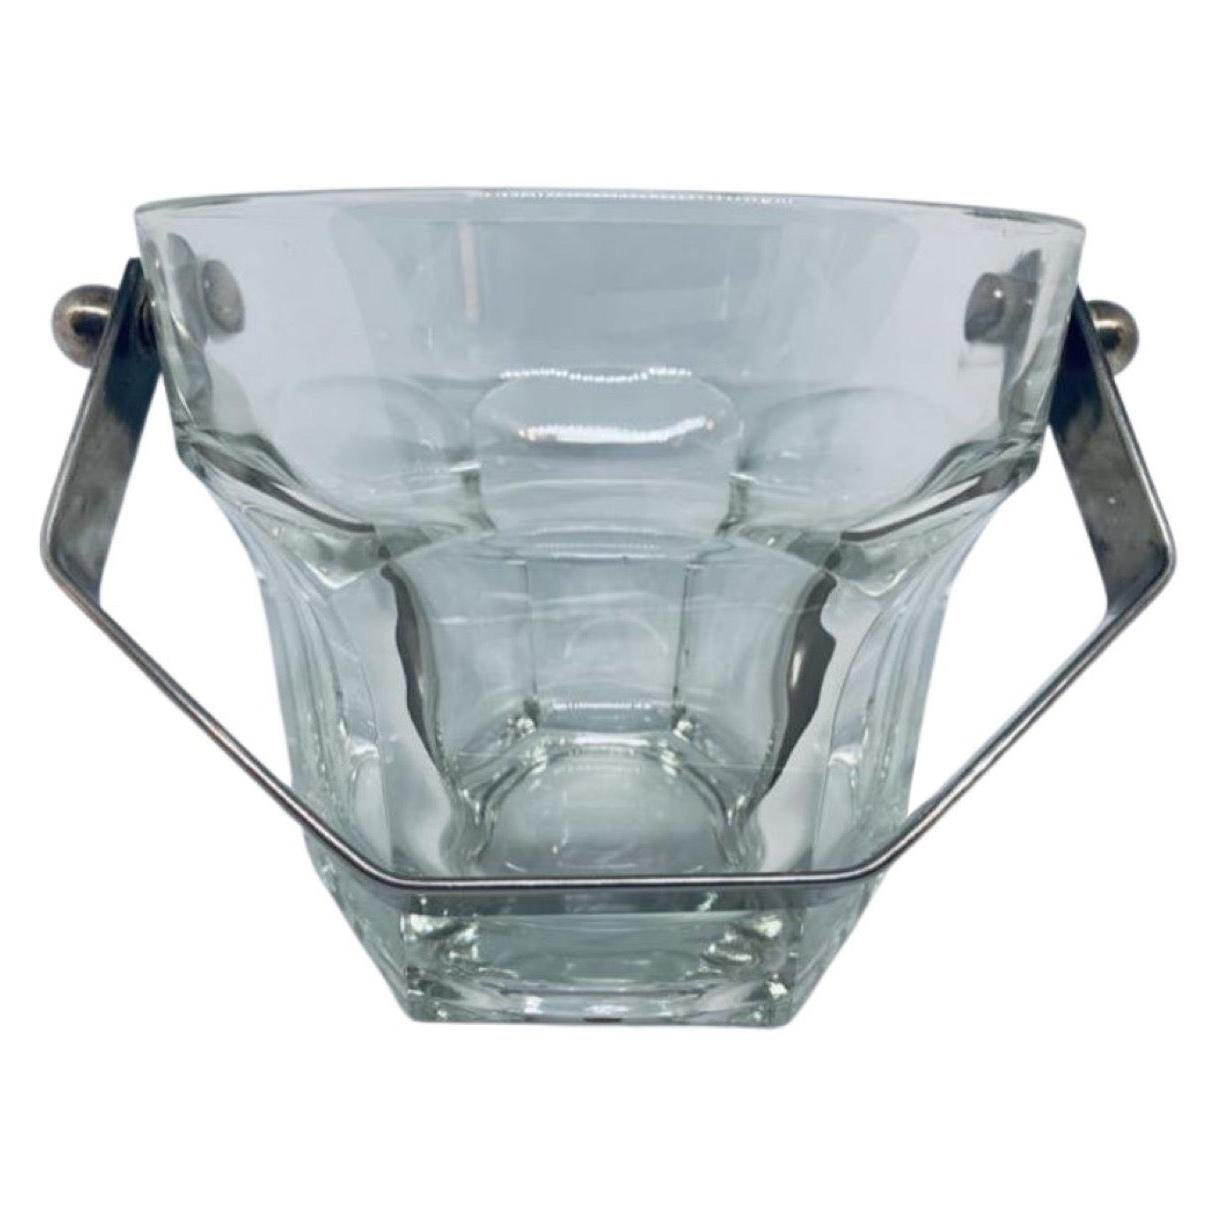 Vintage 1960s Thick Clear Glass Ice Bucket with a Silver Plate Handle